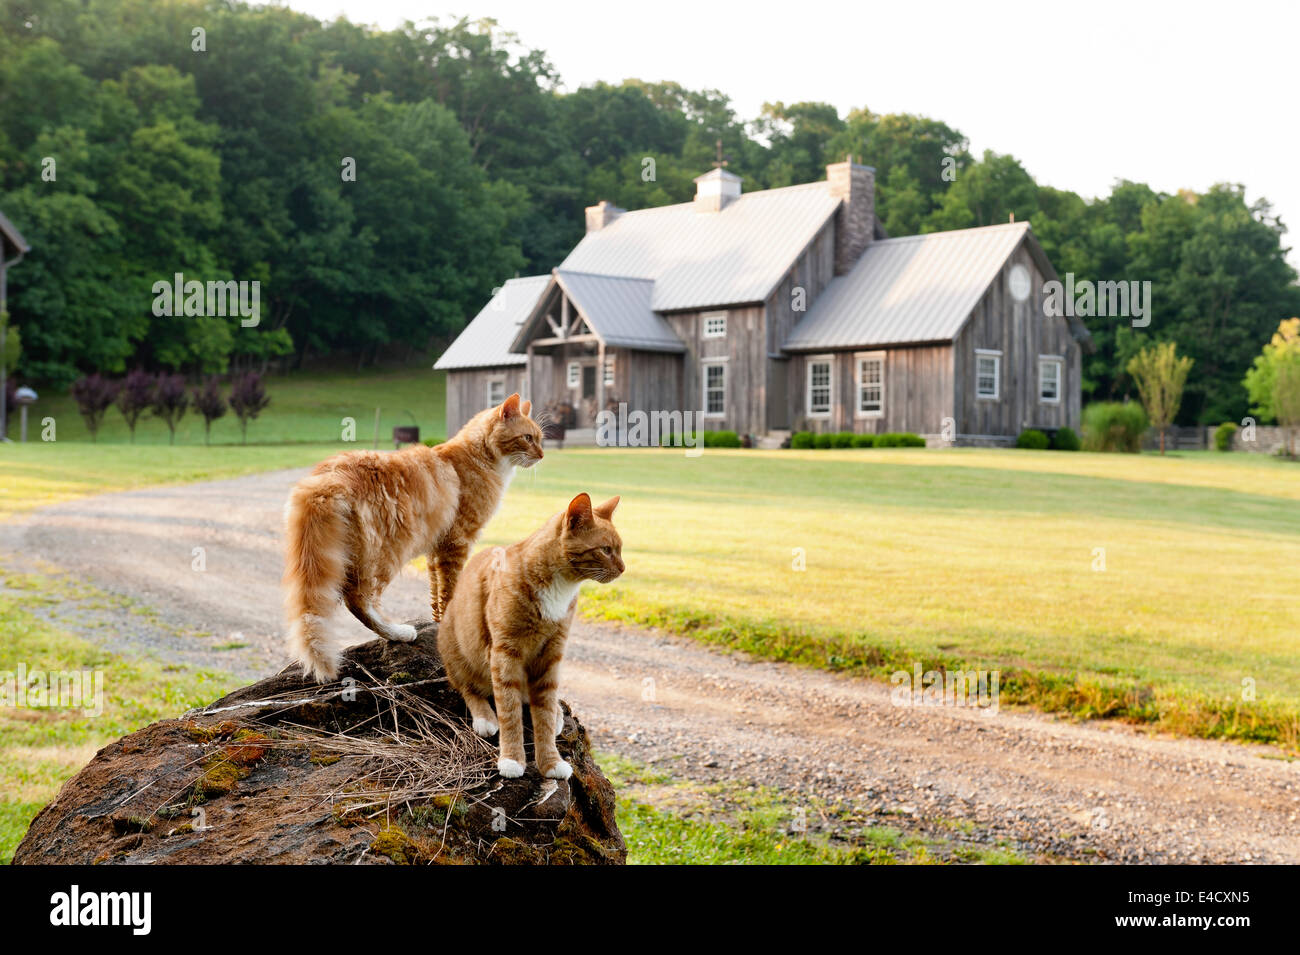 Pair of ginger cats on rock by driveway of timber-framed house - Stock Image